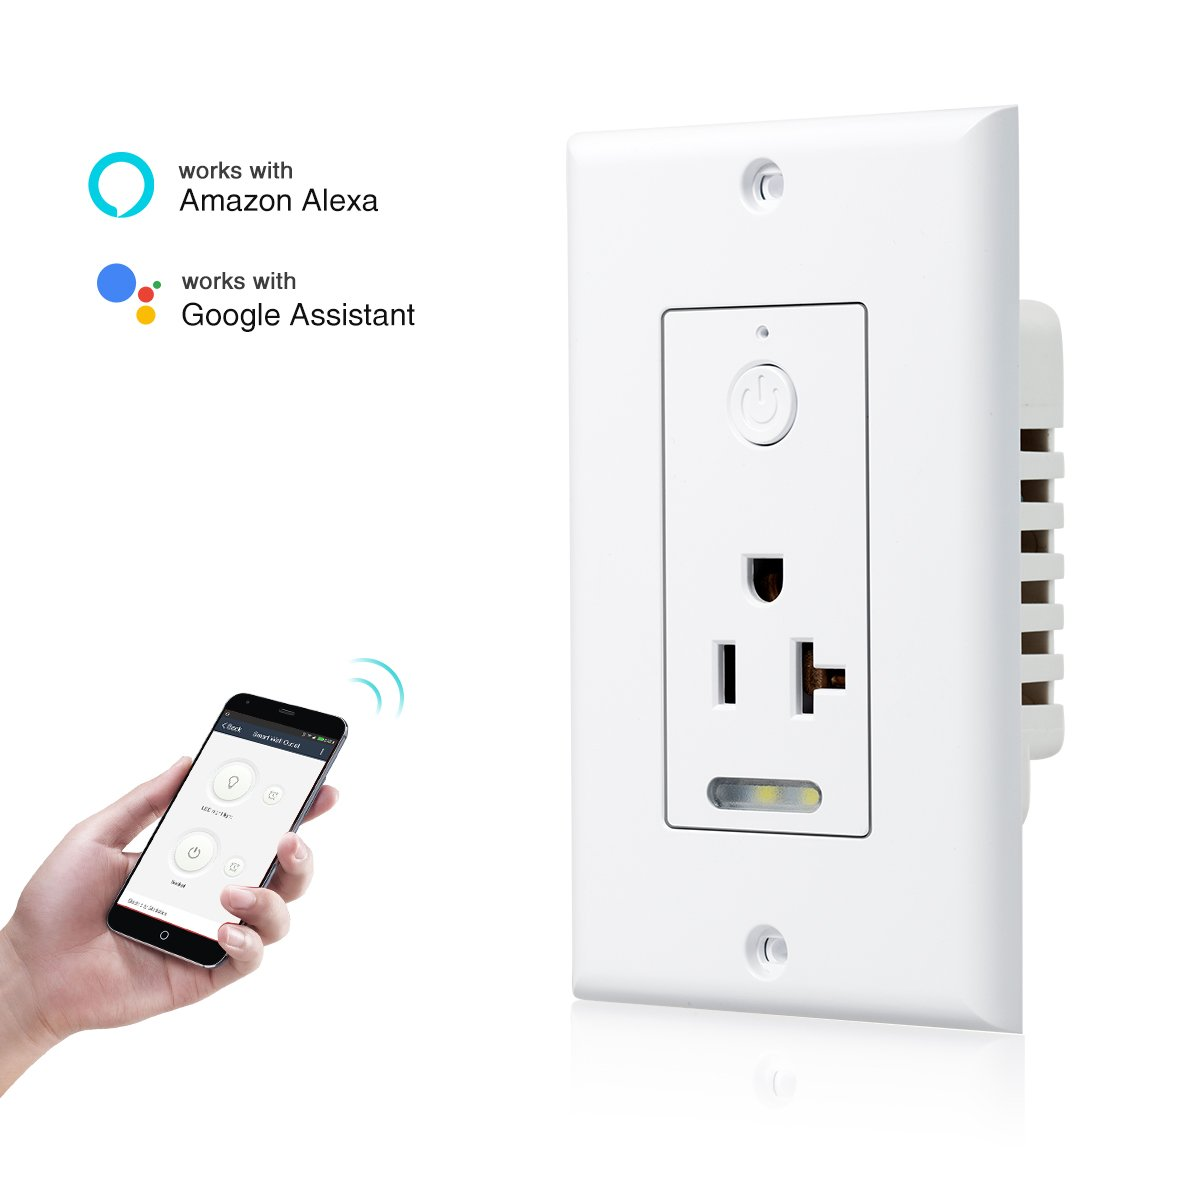 JandCase Wifi Smart Plug Wall-in Smart Outlet with Night Light and 1 Socket, 5-15 Amp Receptacle Tamper Resistant, Works with Alexa, No Hub Required, Remote Control, 1 Pack